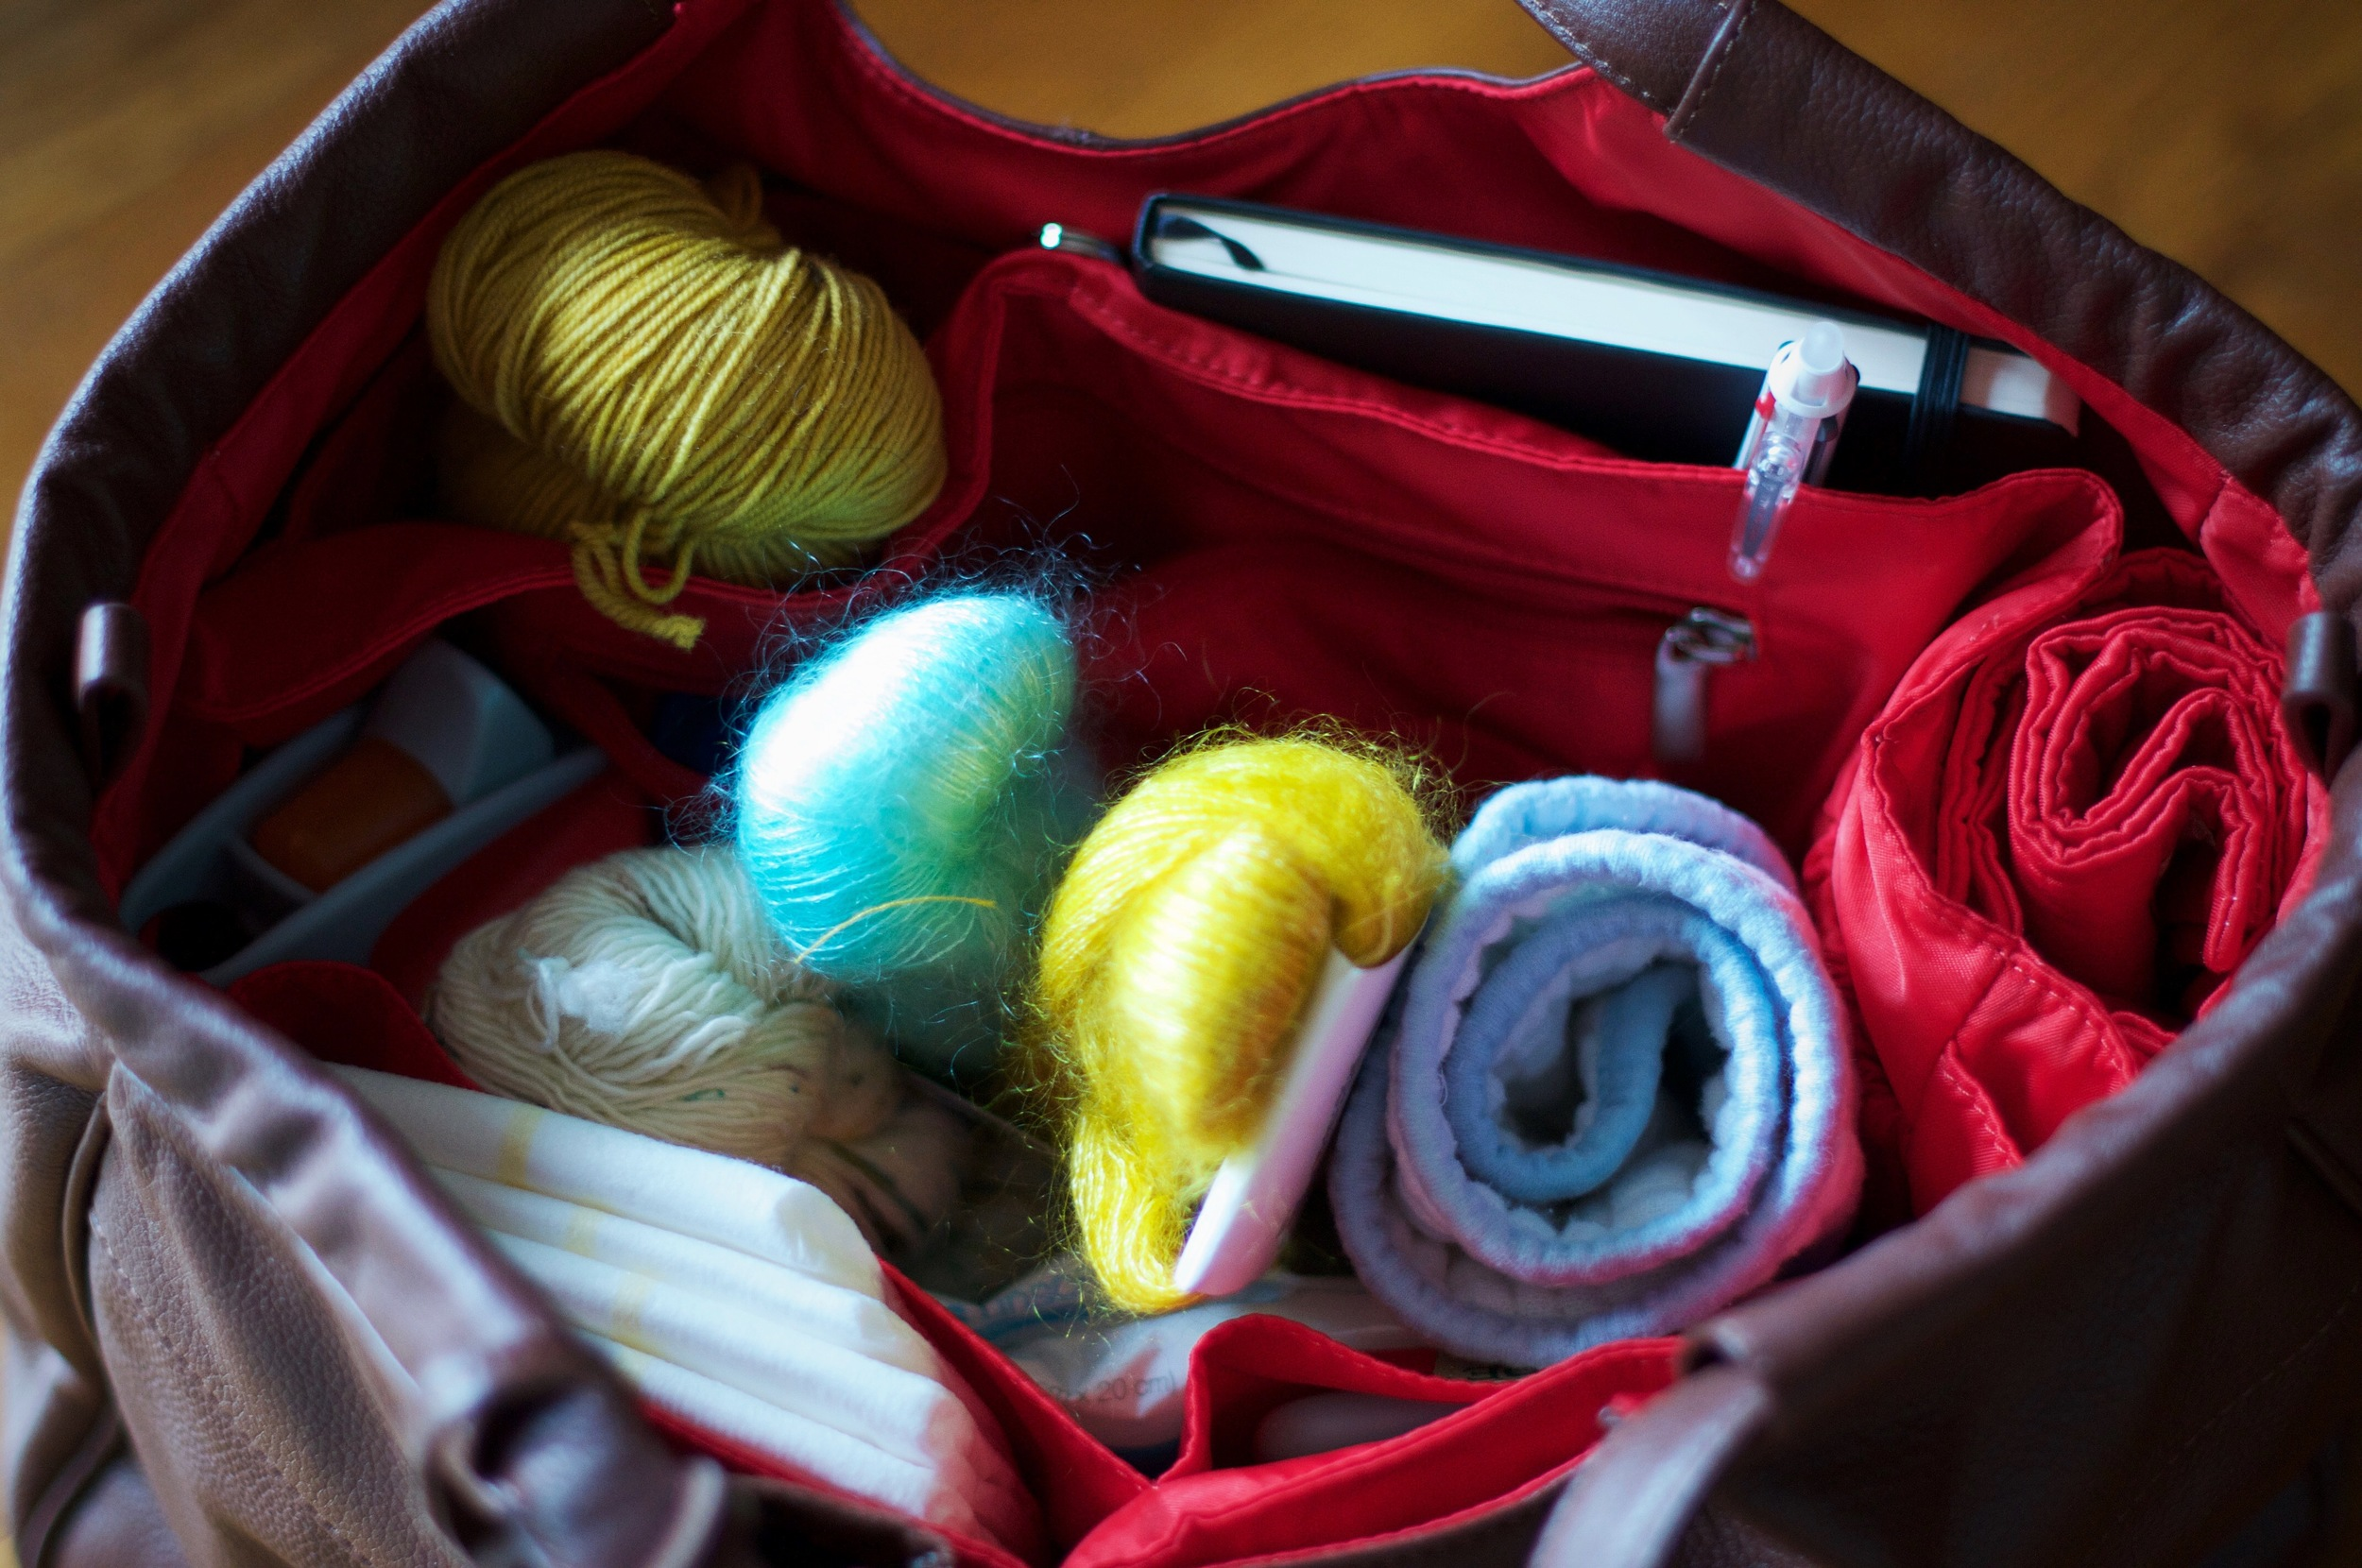 Why yes, that is my yarn and sketchbook snuggled up with diapers, sippy cup and burp cloth - necessities whenever we leave the house!